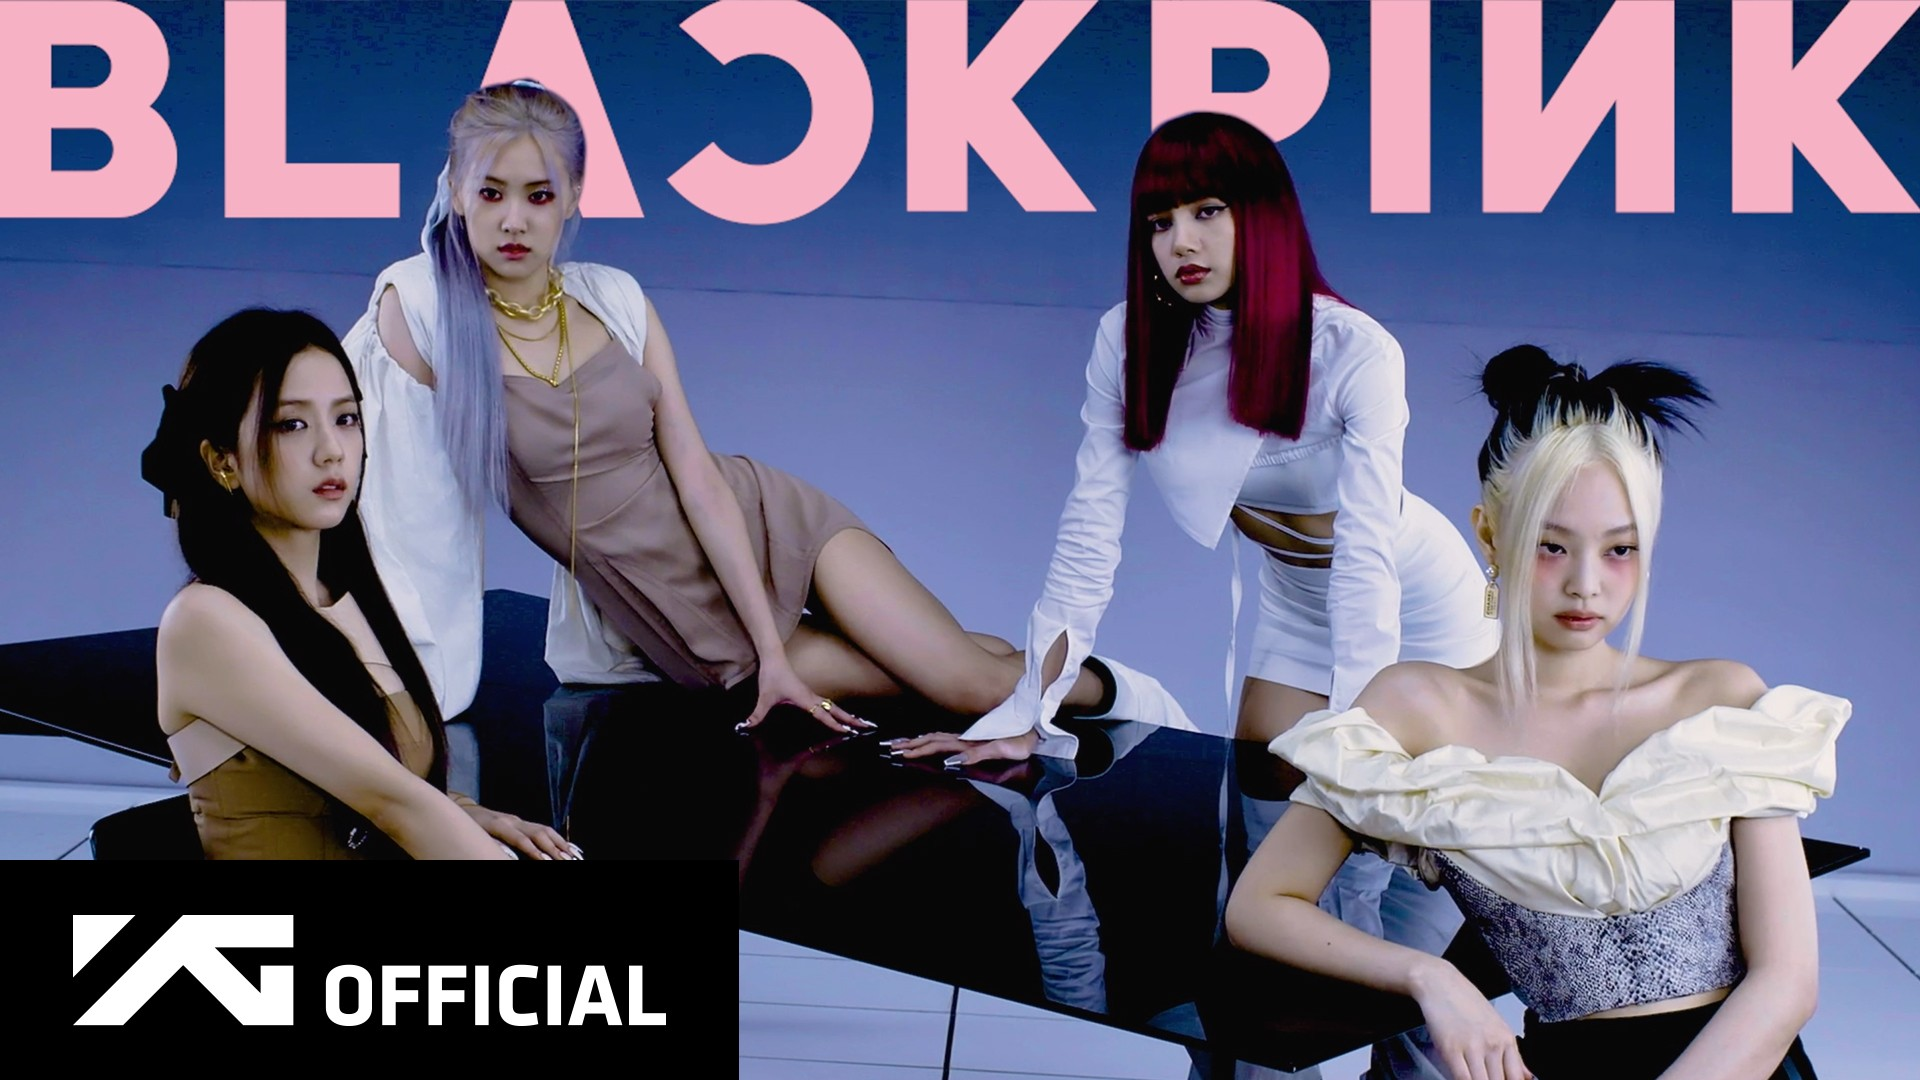 BLACKPINK - 'How You Like That' Concept Teaser Video